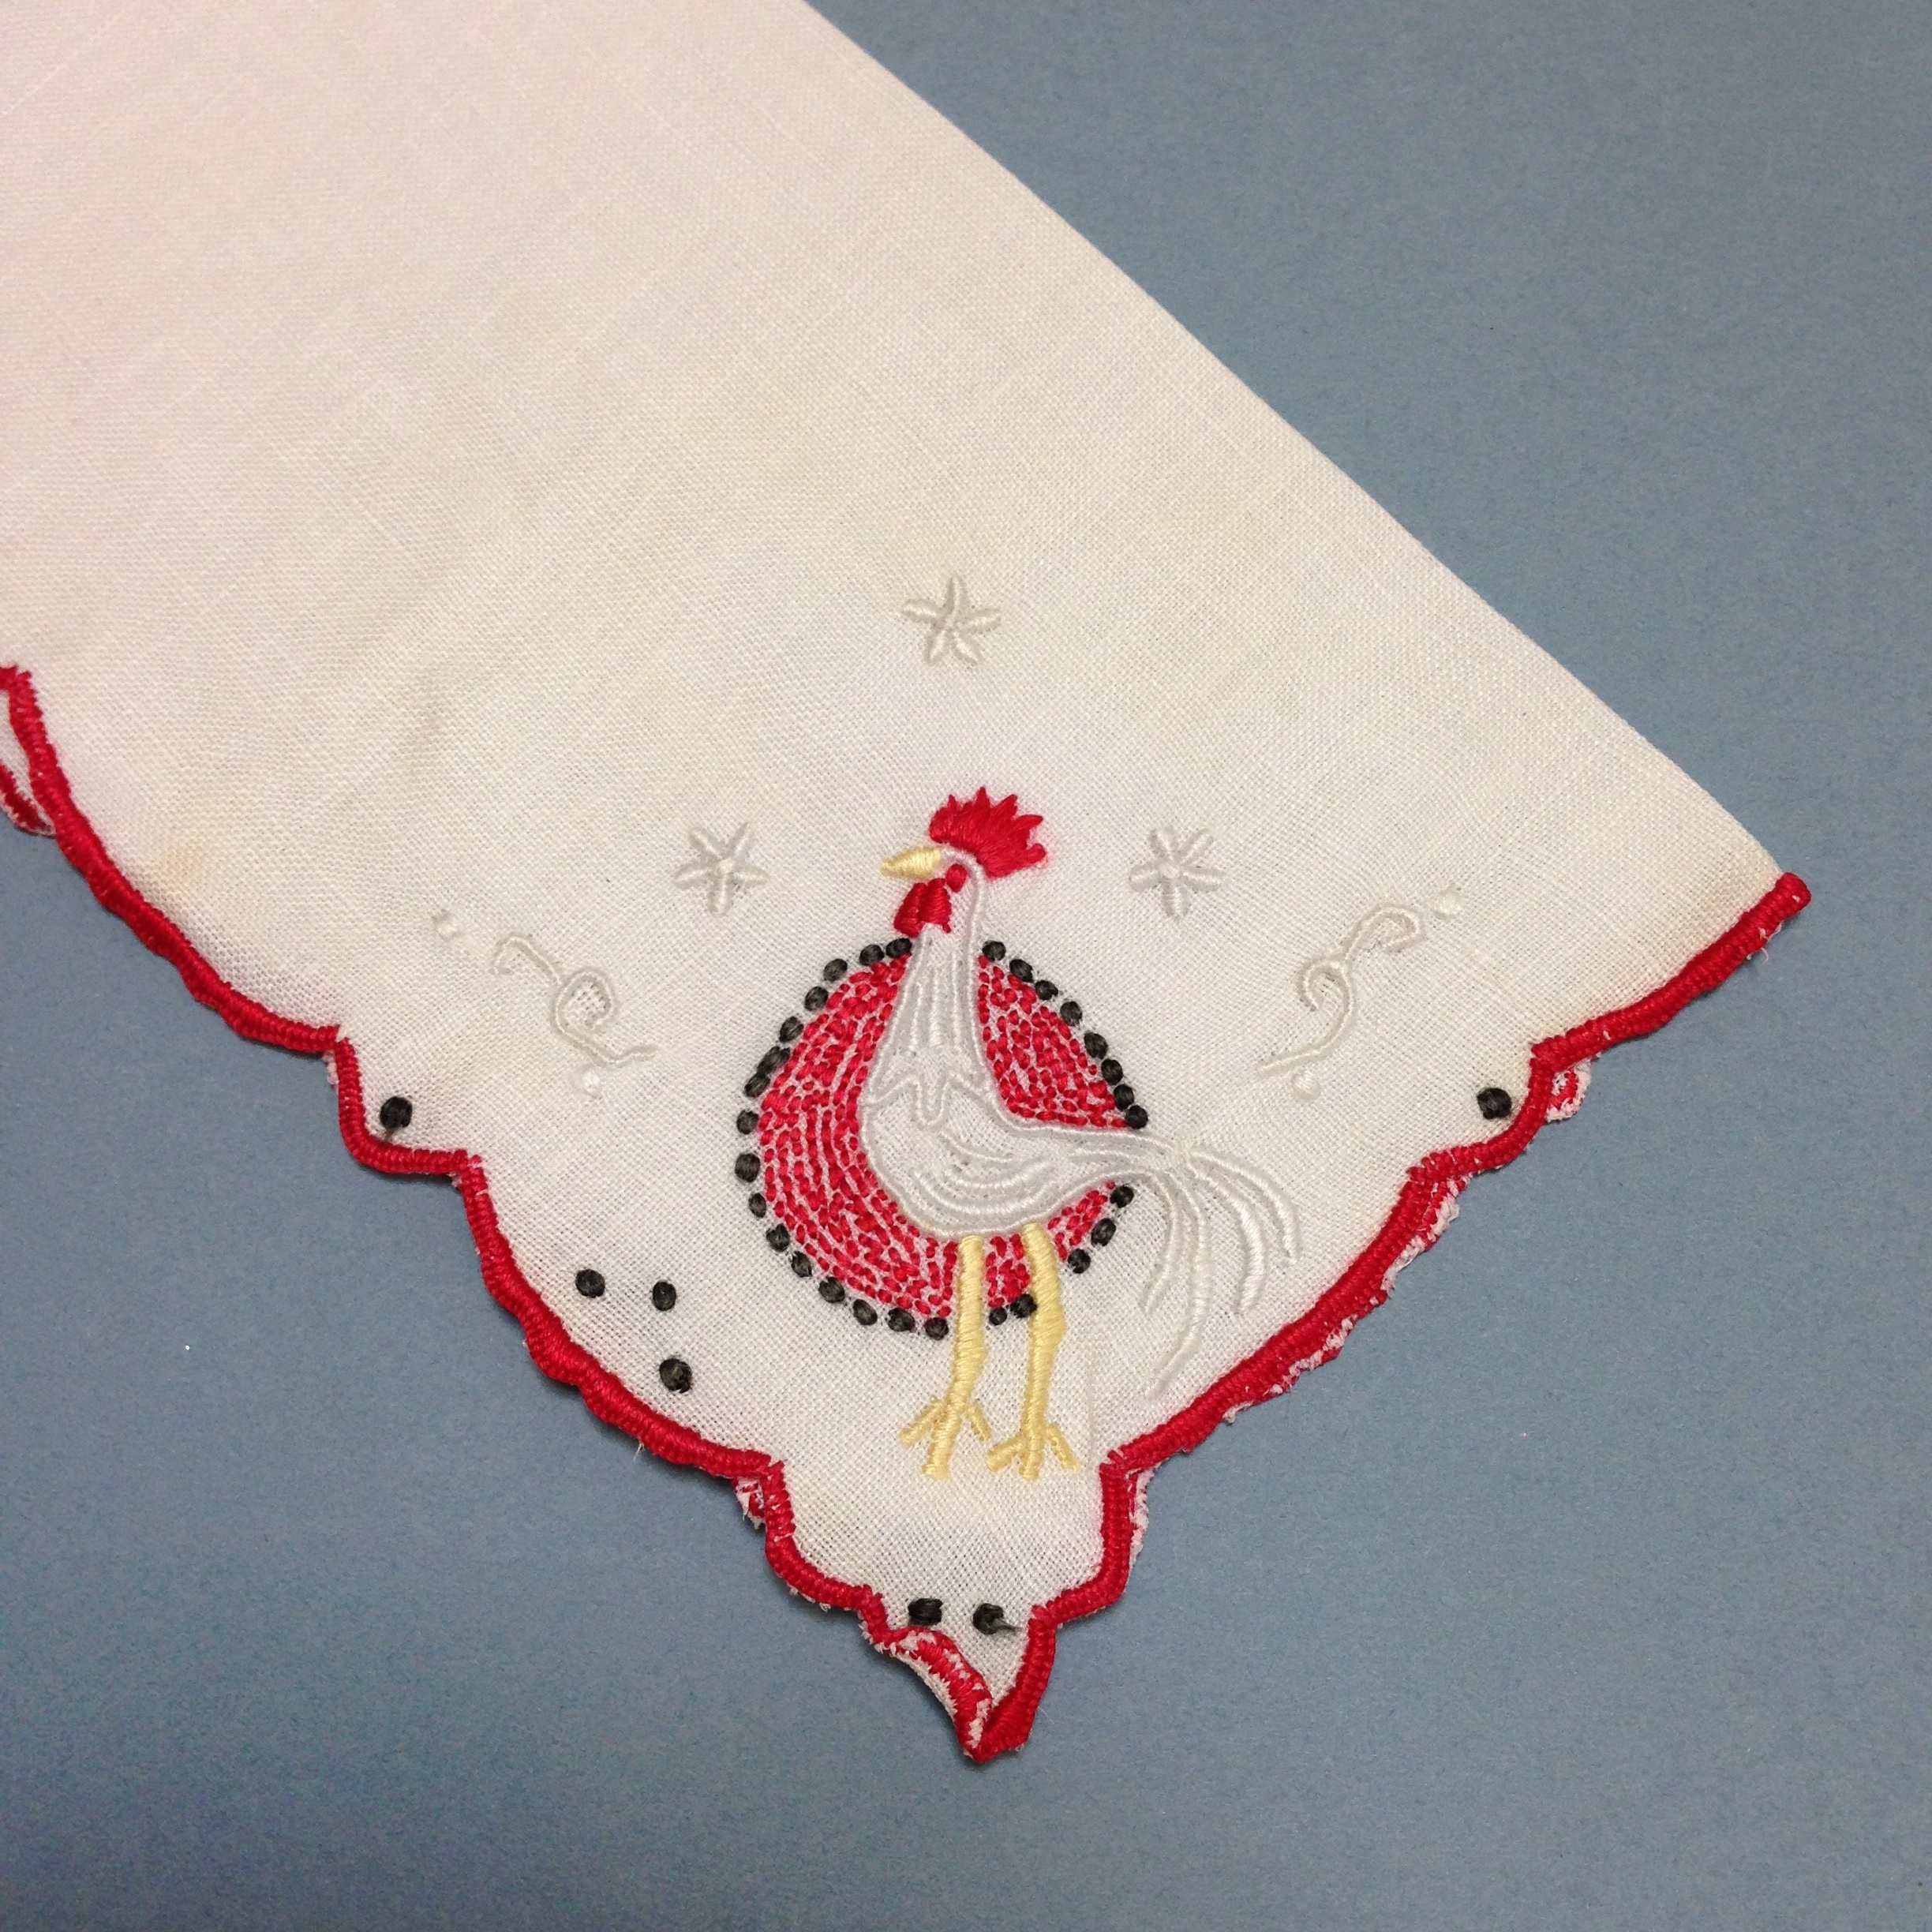 Red rooster hanky